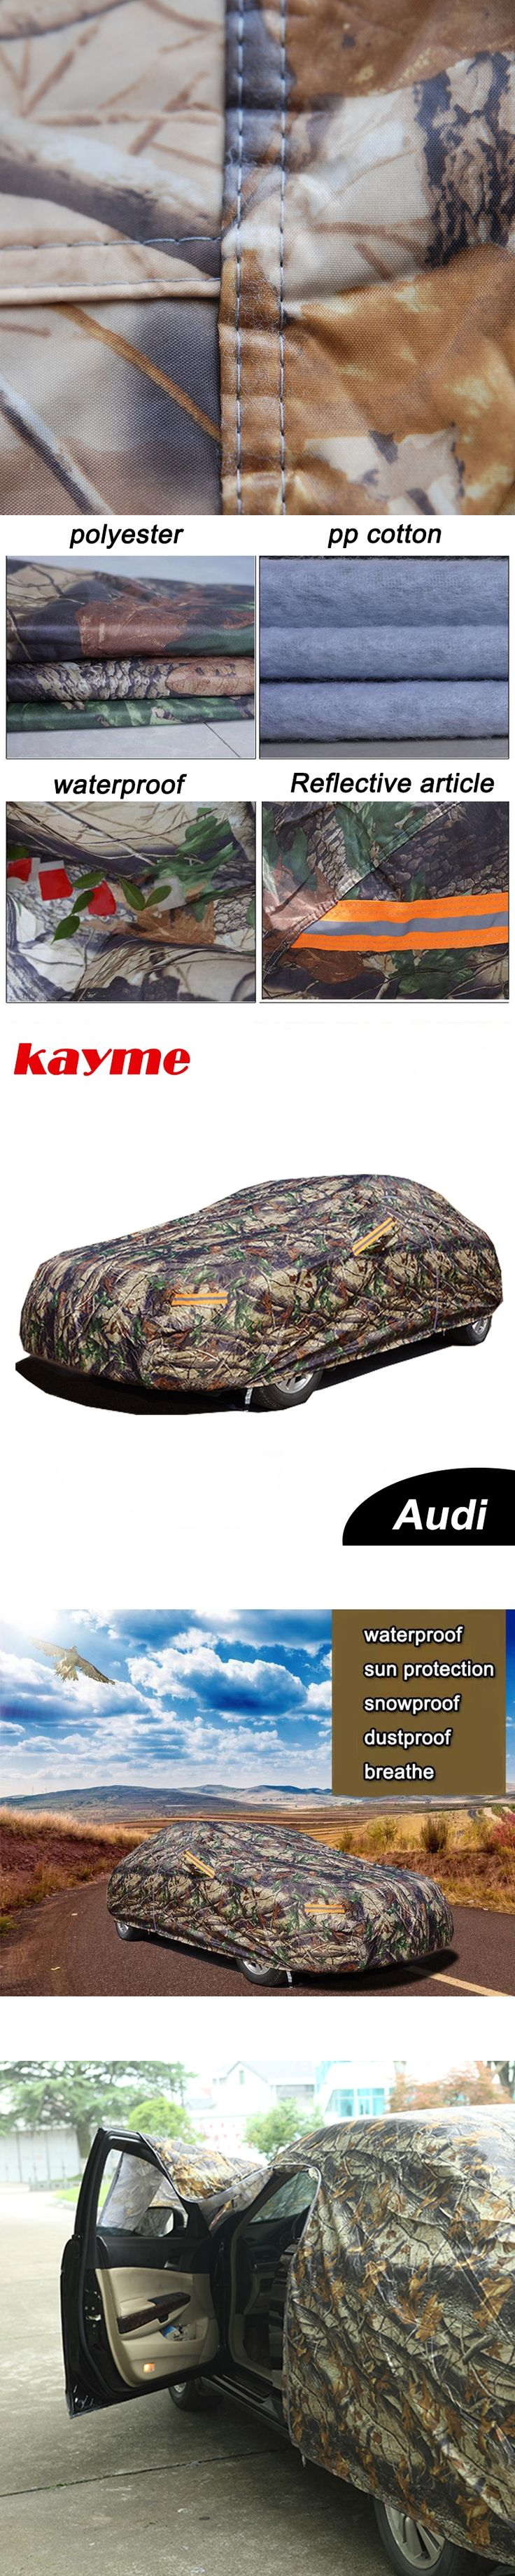 Kayme Camouflage waterproof car covers outdoor cotton sun protection for audi a4 b6 b7 b8 a3 a6 c5 c6 q5 q7